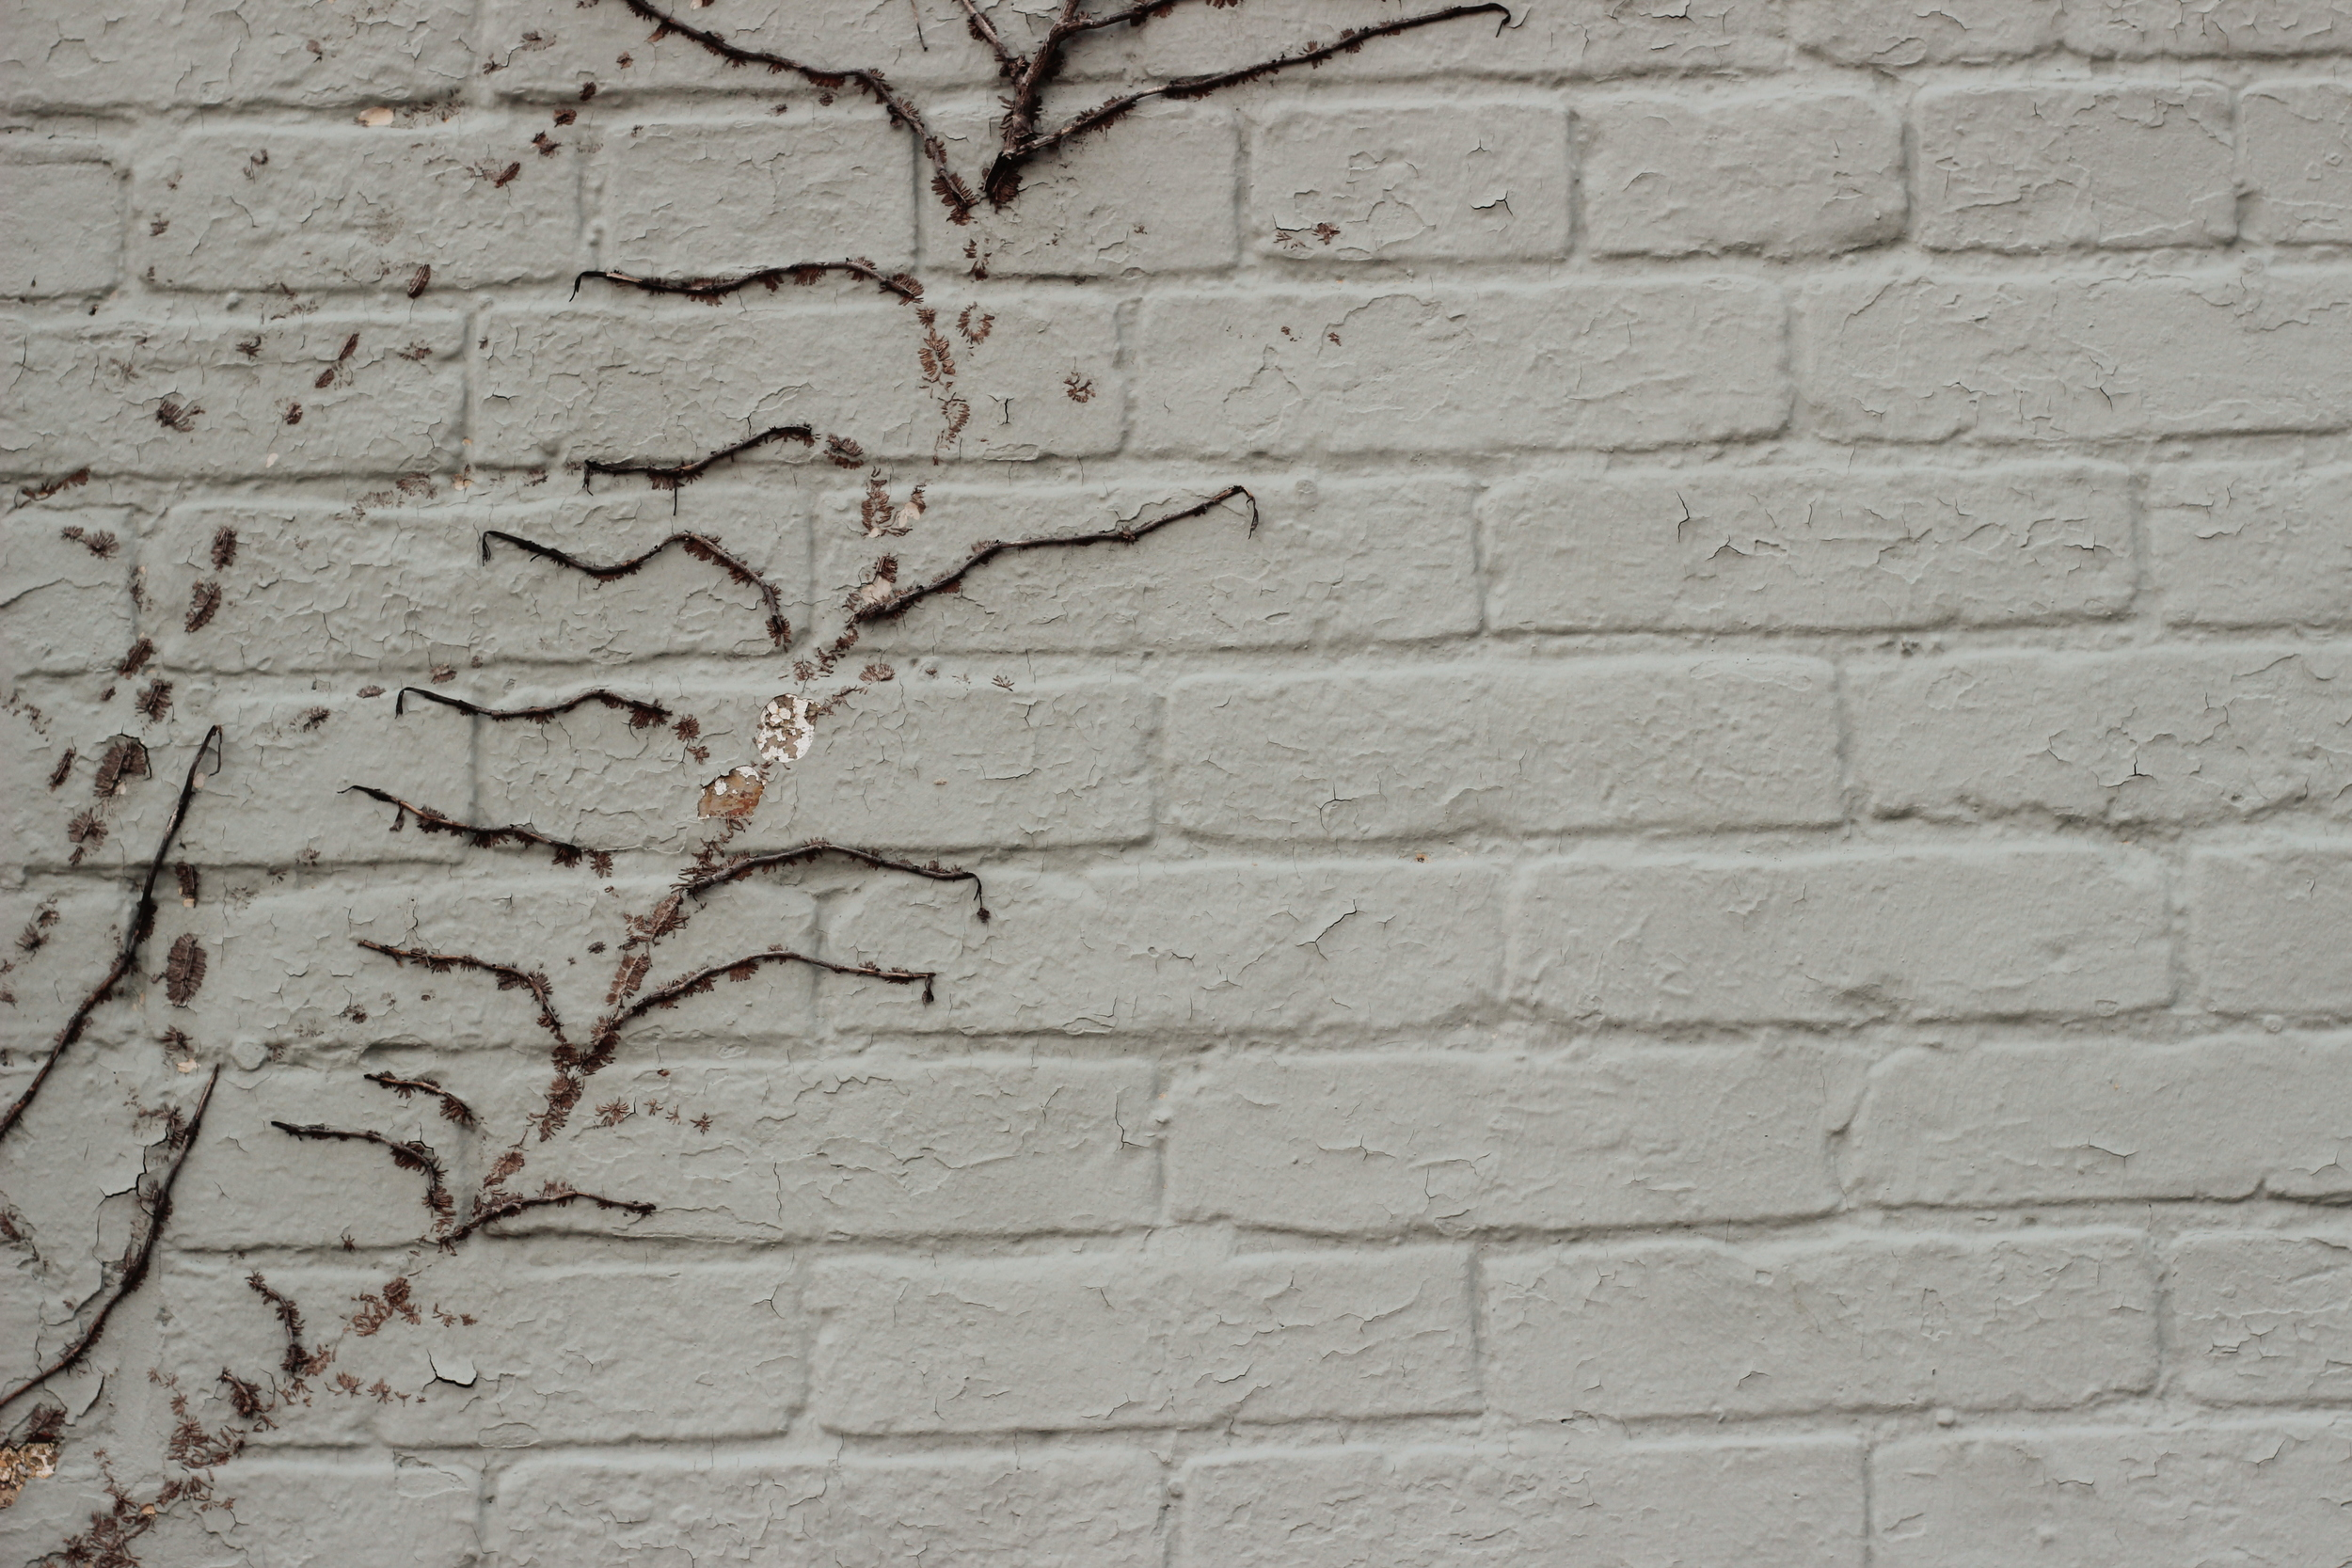 vines on brick wall